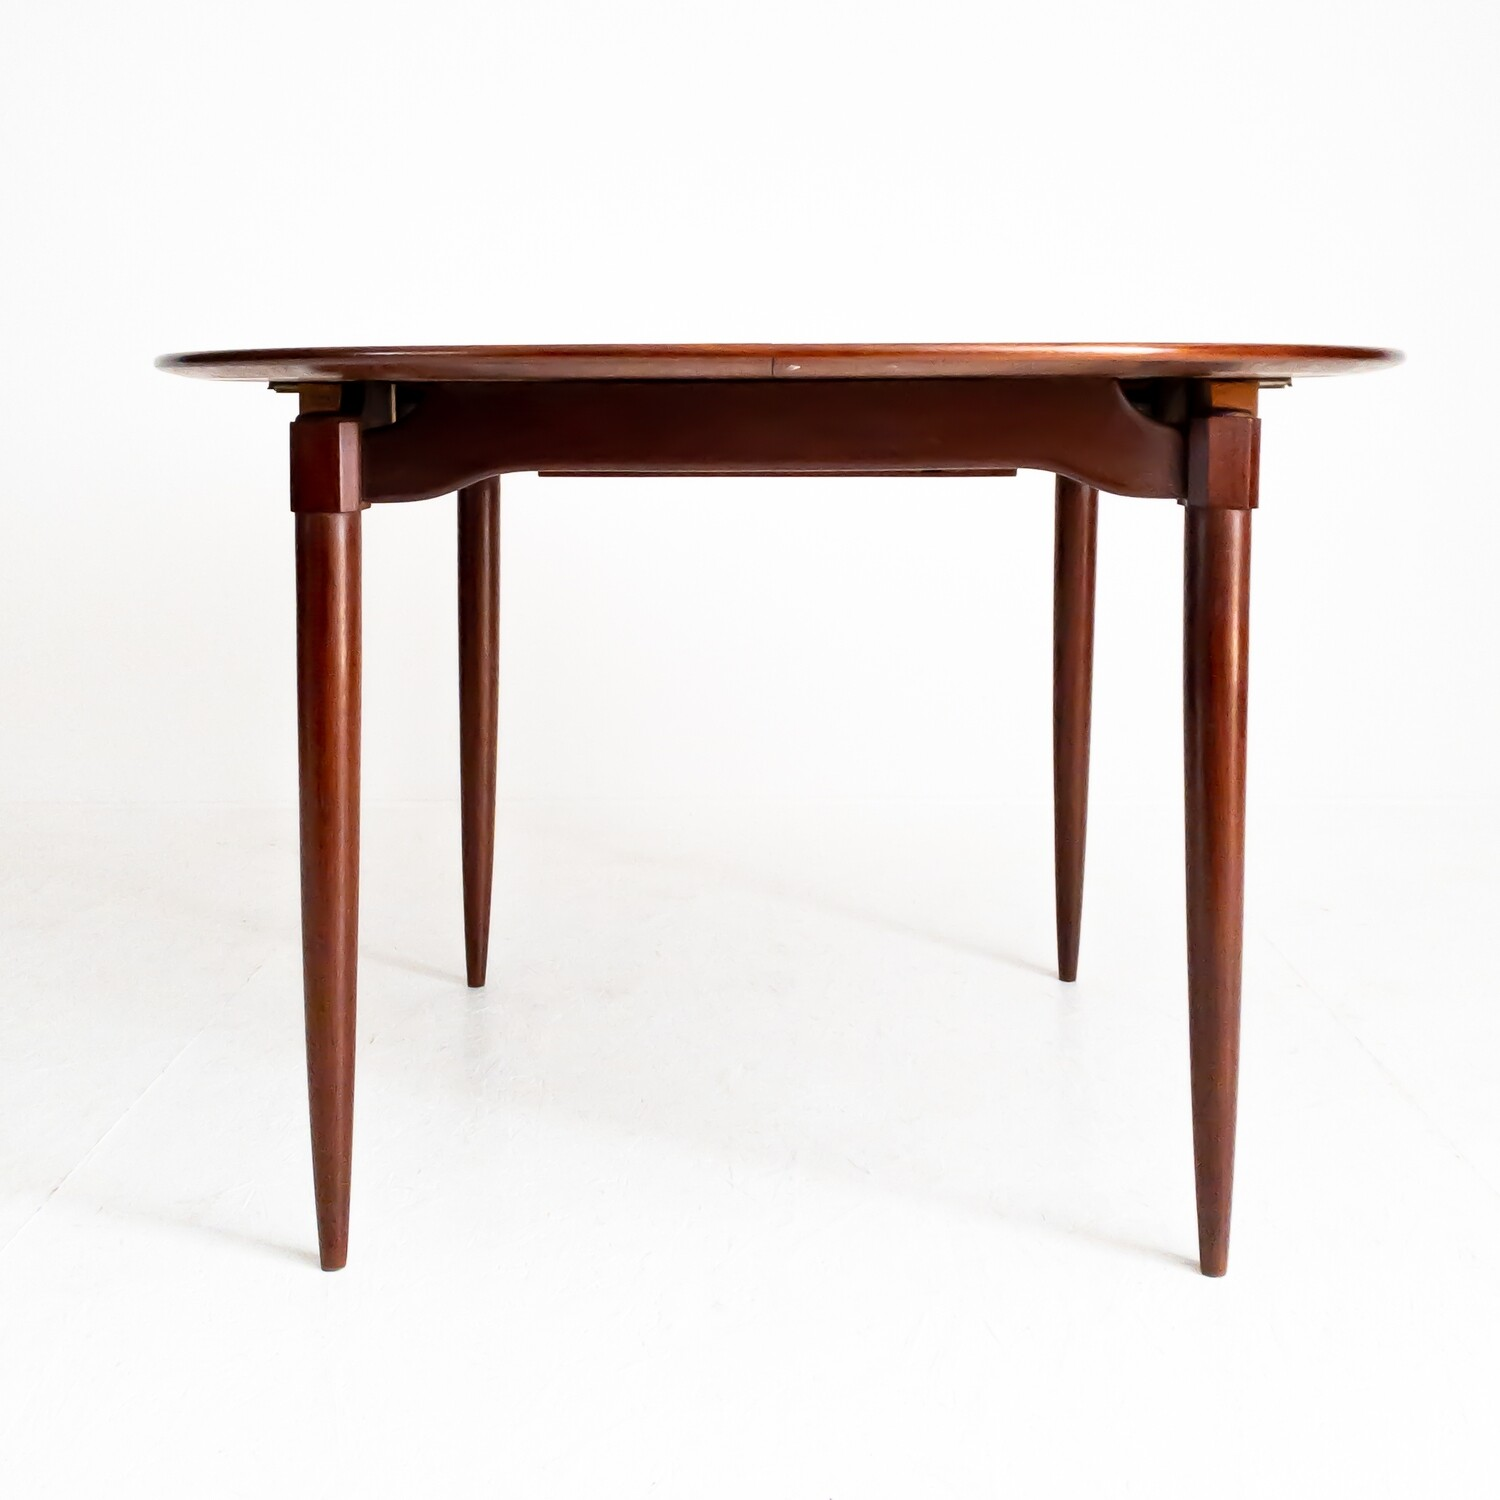 Round extendable table in teak, Italy 1950s